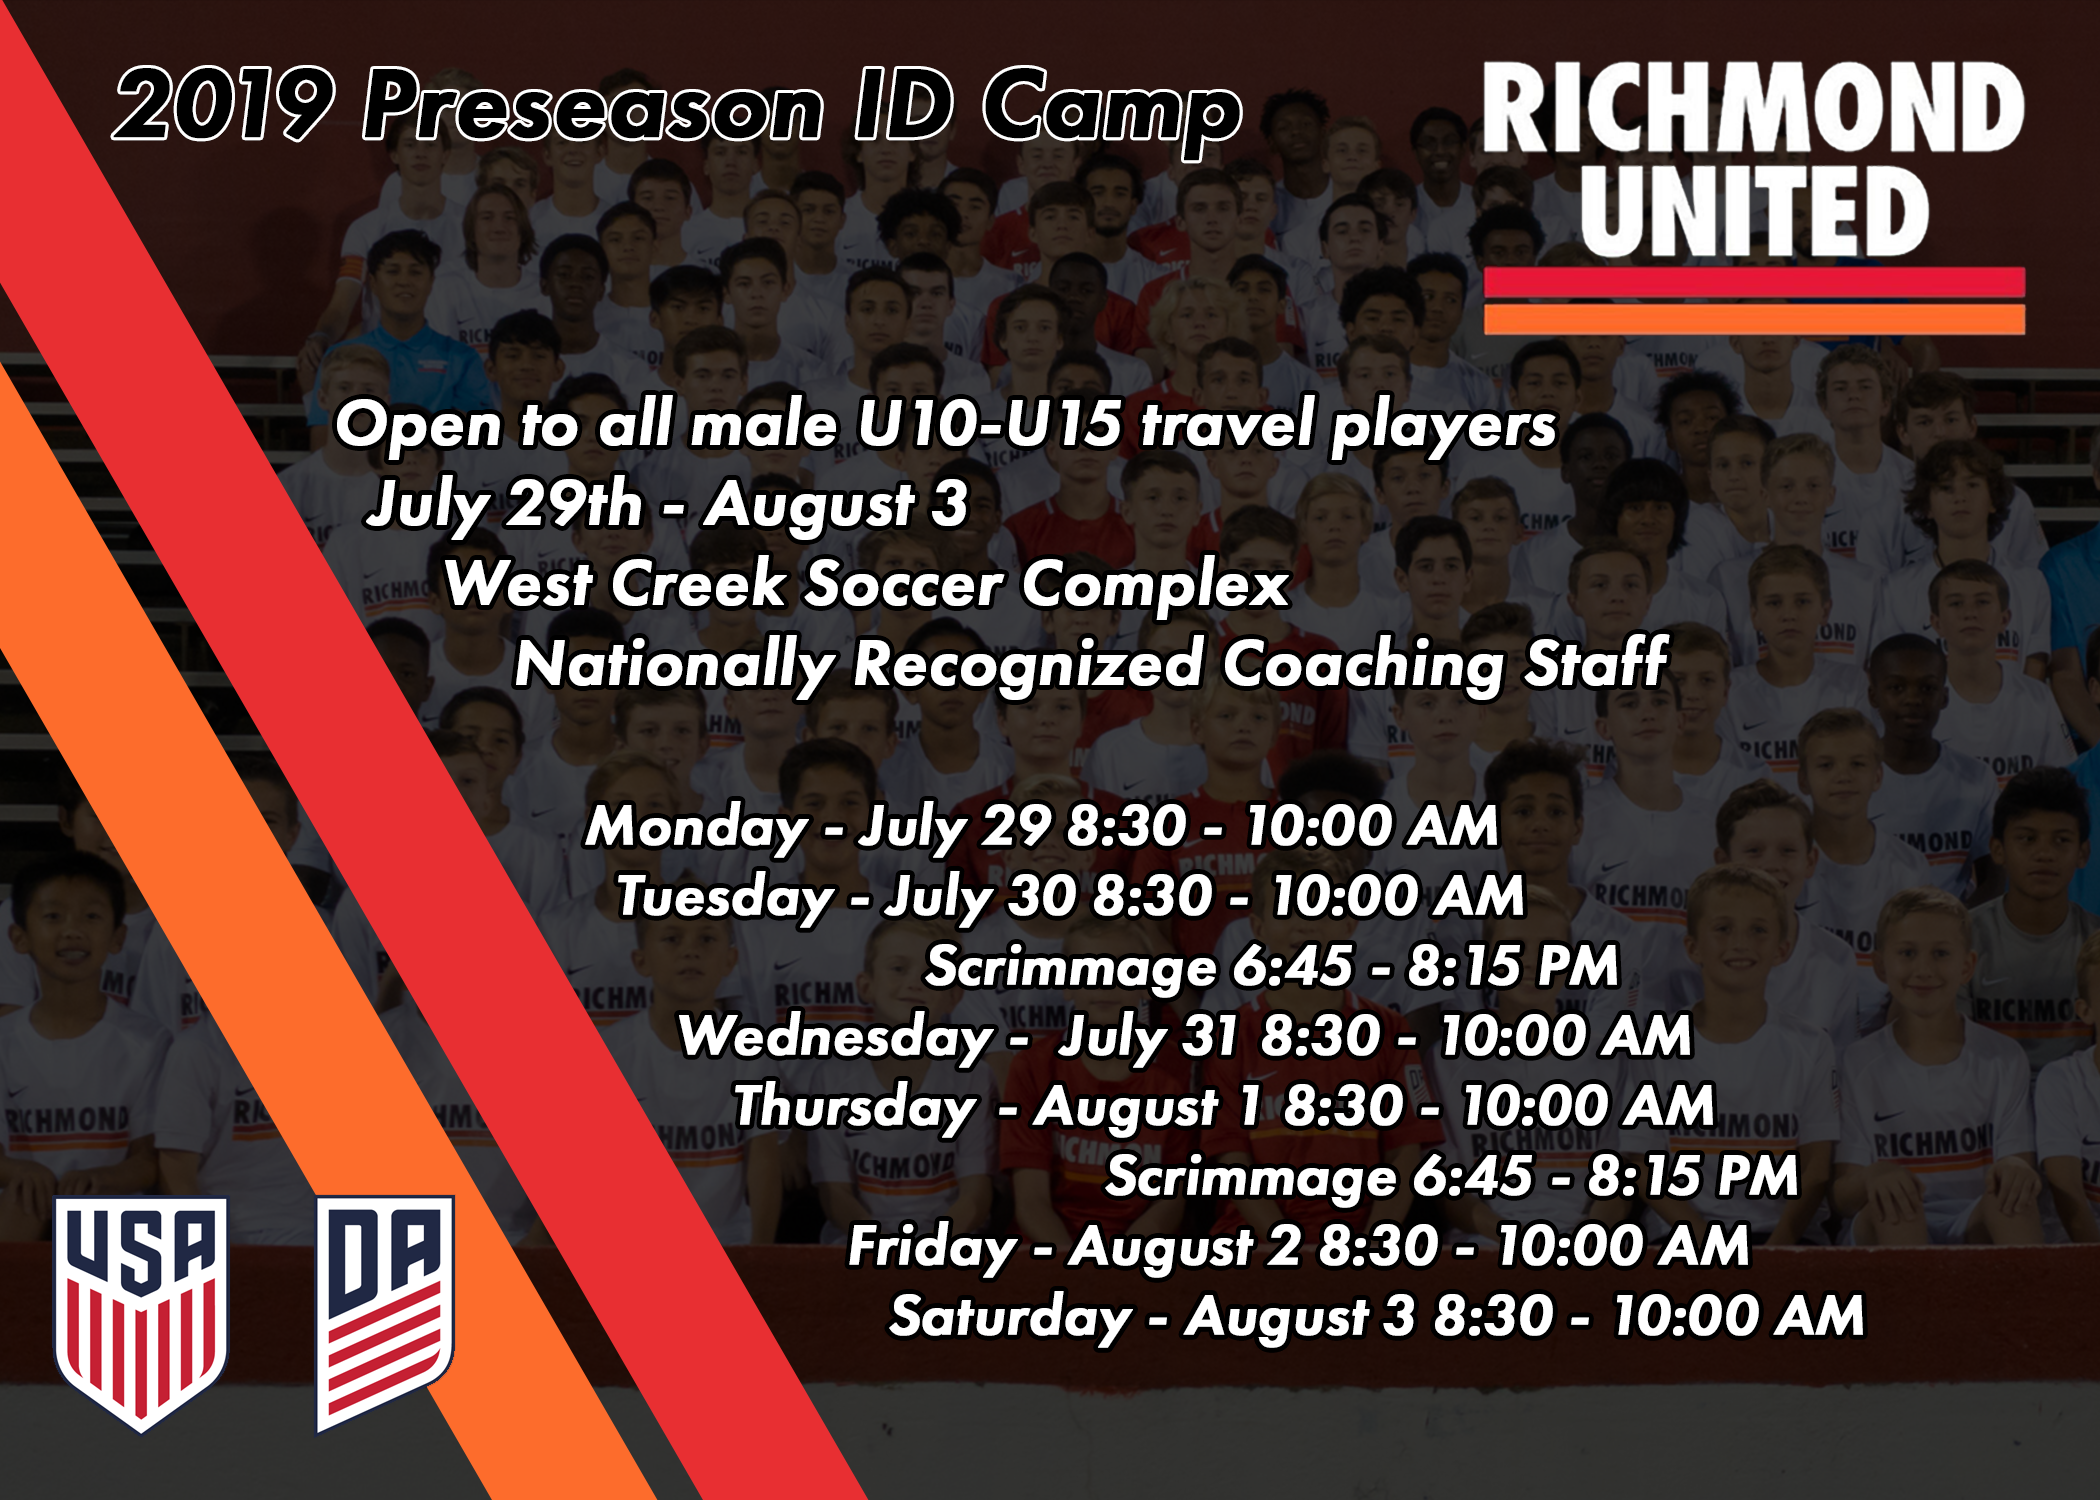 RICHMOND UNITED ANNOUNCES PRESEASON ID CAMP